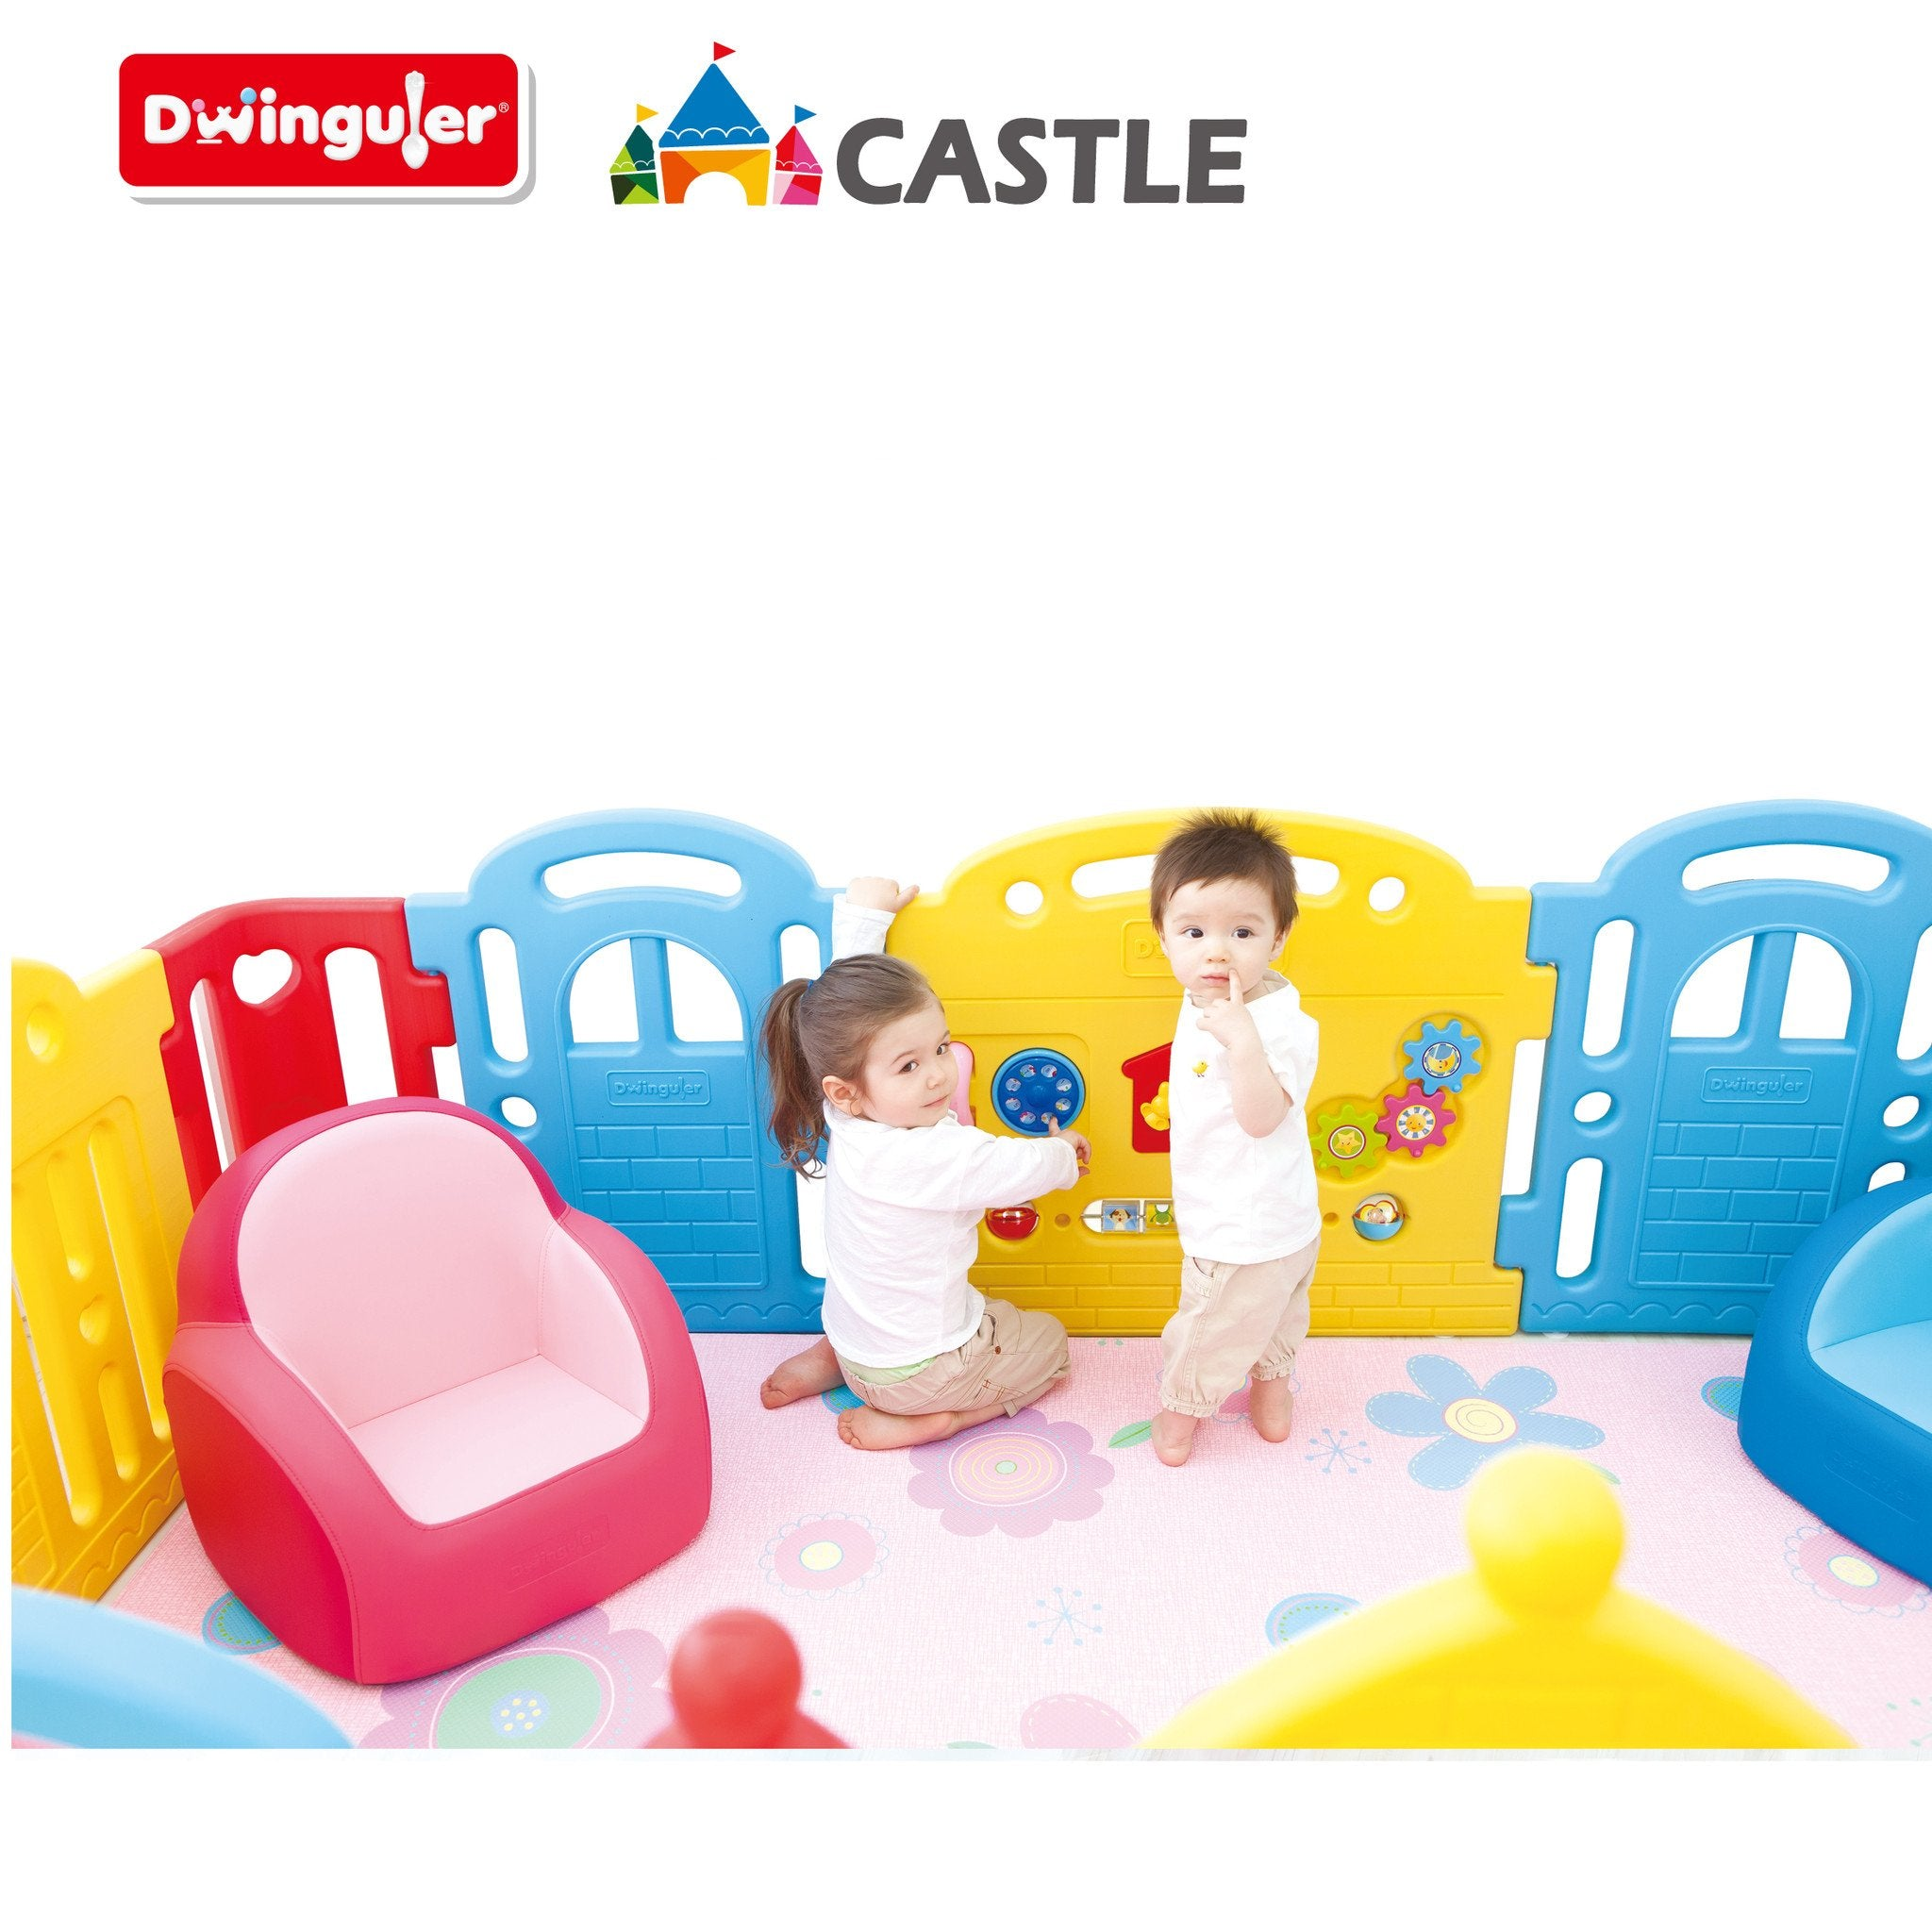 Rainbow Dwinguler Castle Play Room for kids